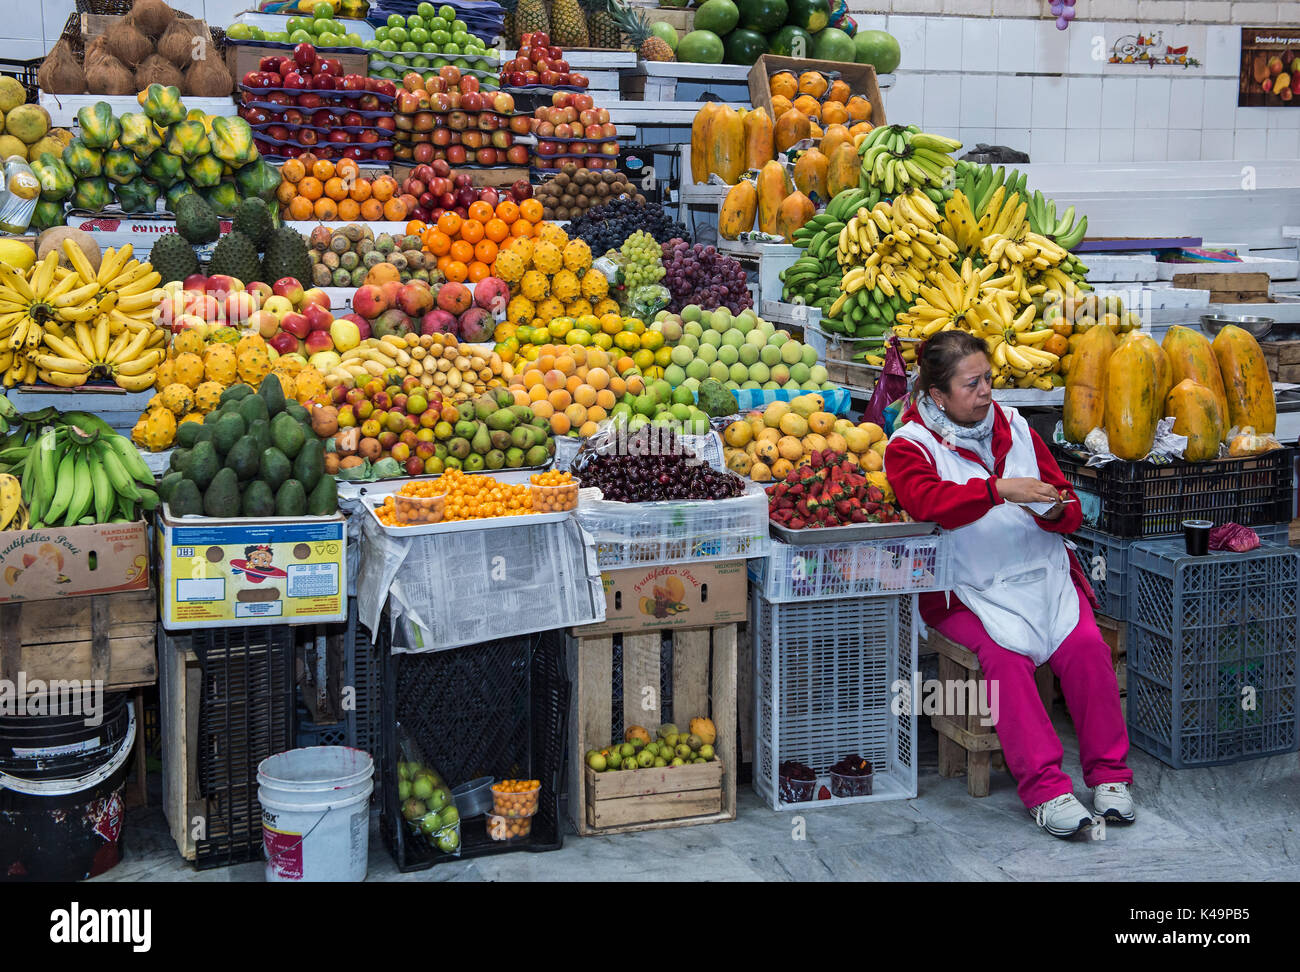 Colorful Fruit Stand With Exotic Fruits On Display, Inaquito Market Food Court, Quito, Ecuador Stock Photo